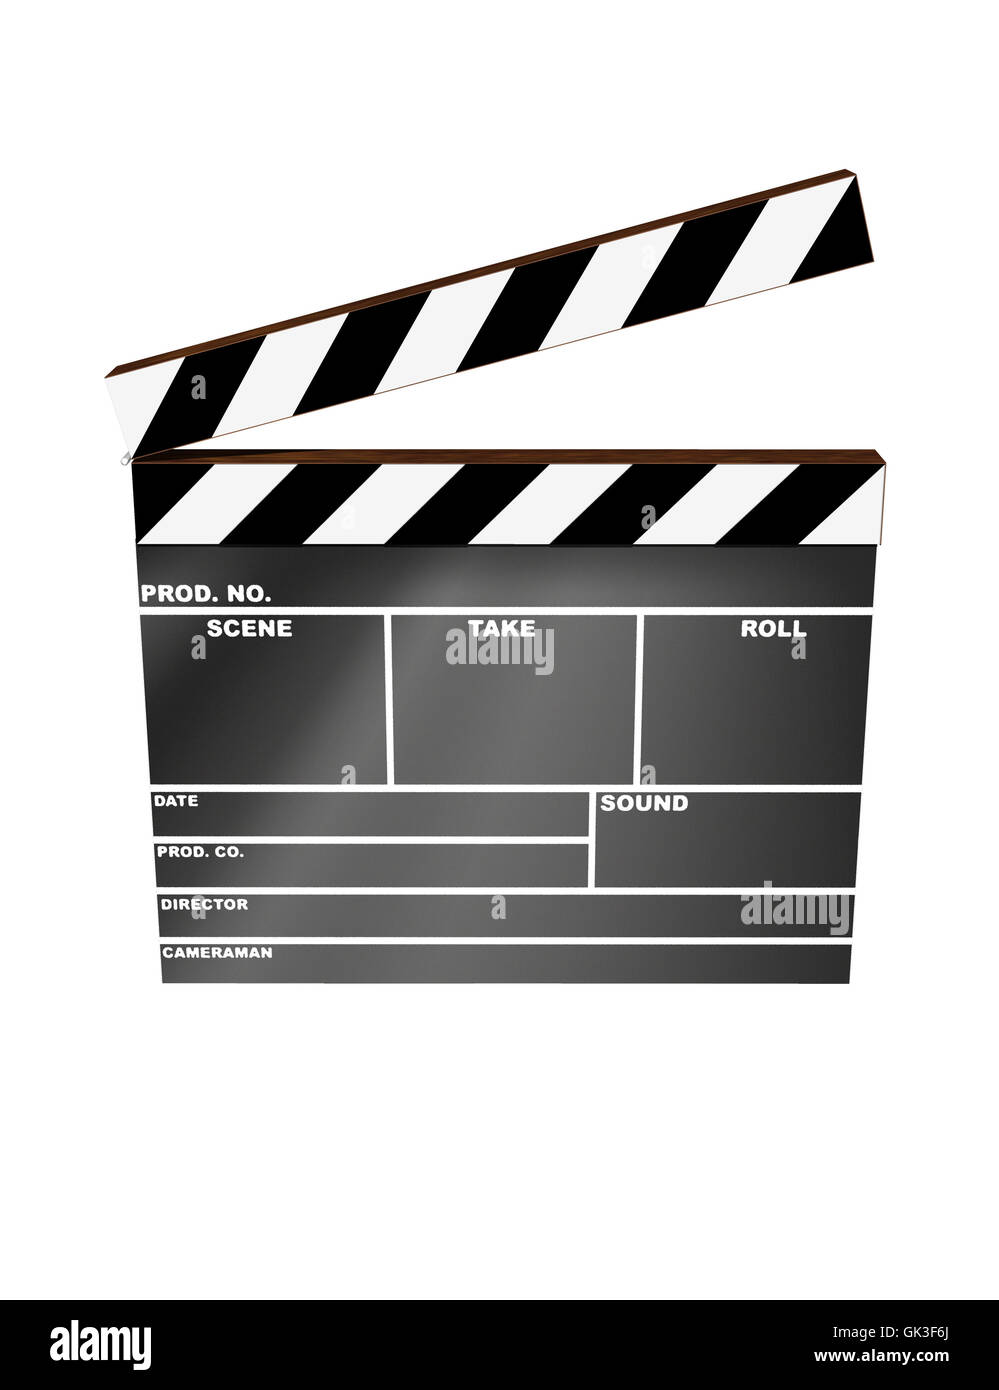 industry clapper film - Stock Image